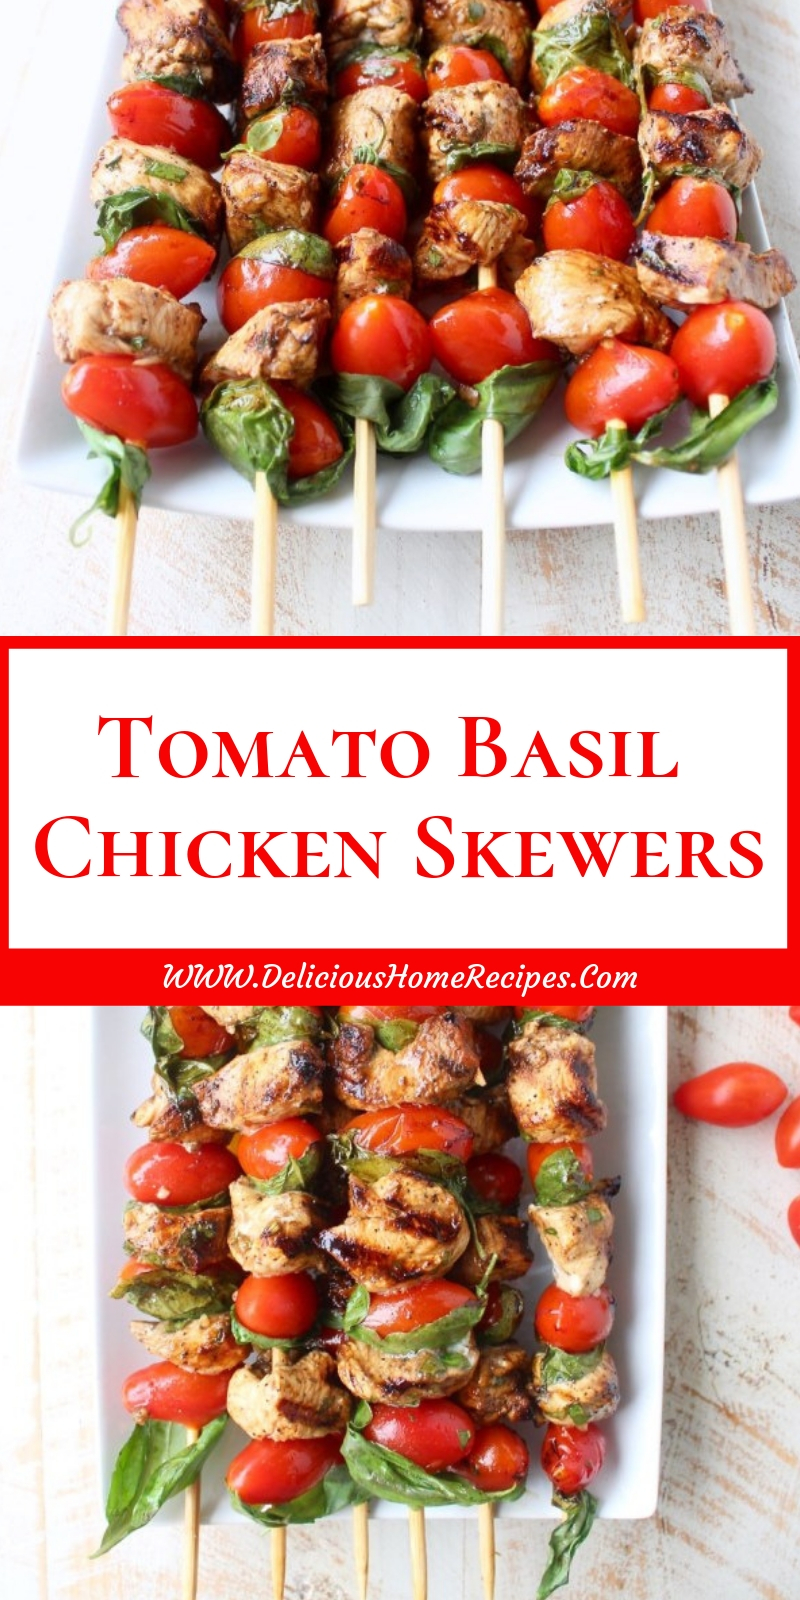 Tomato Basil Chicken Skewers